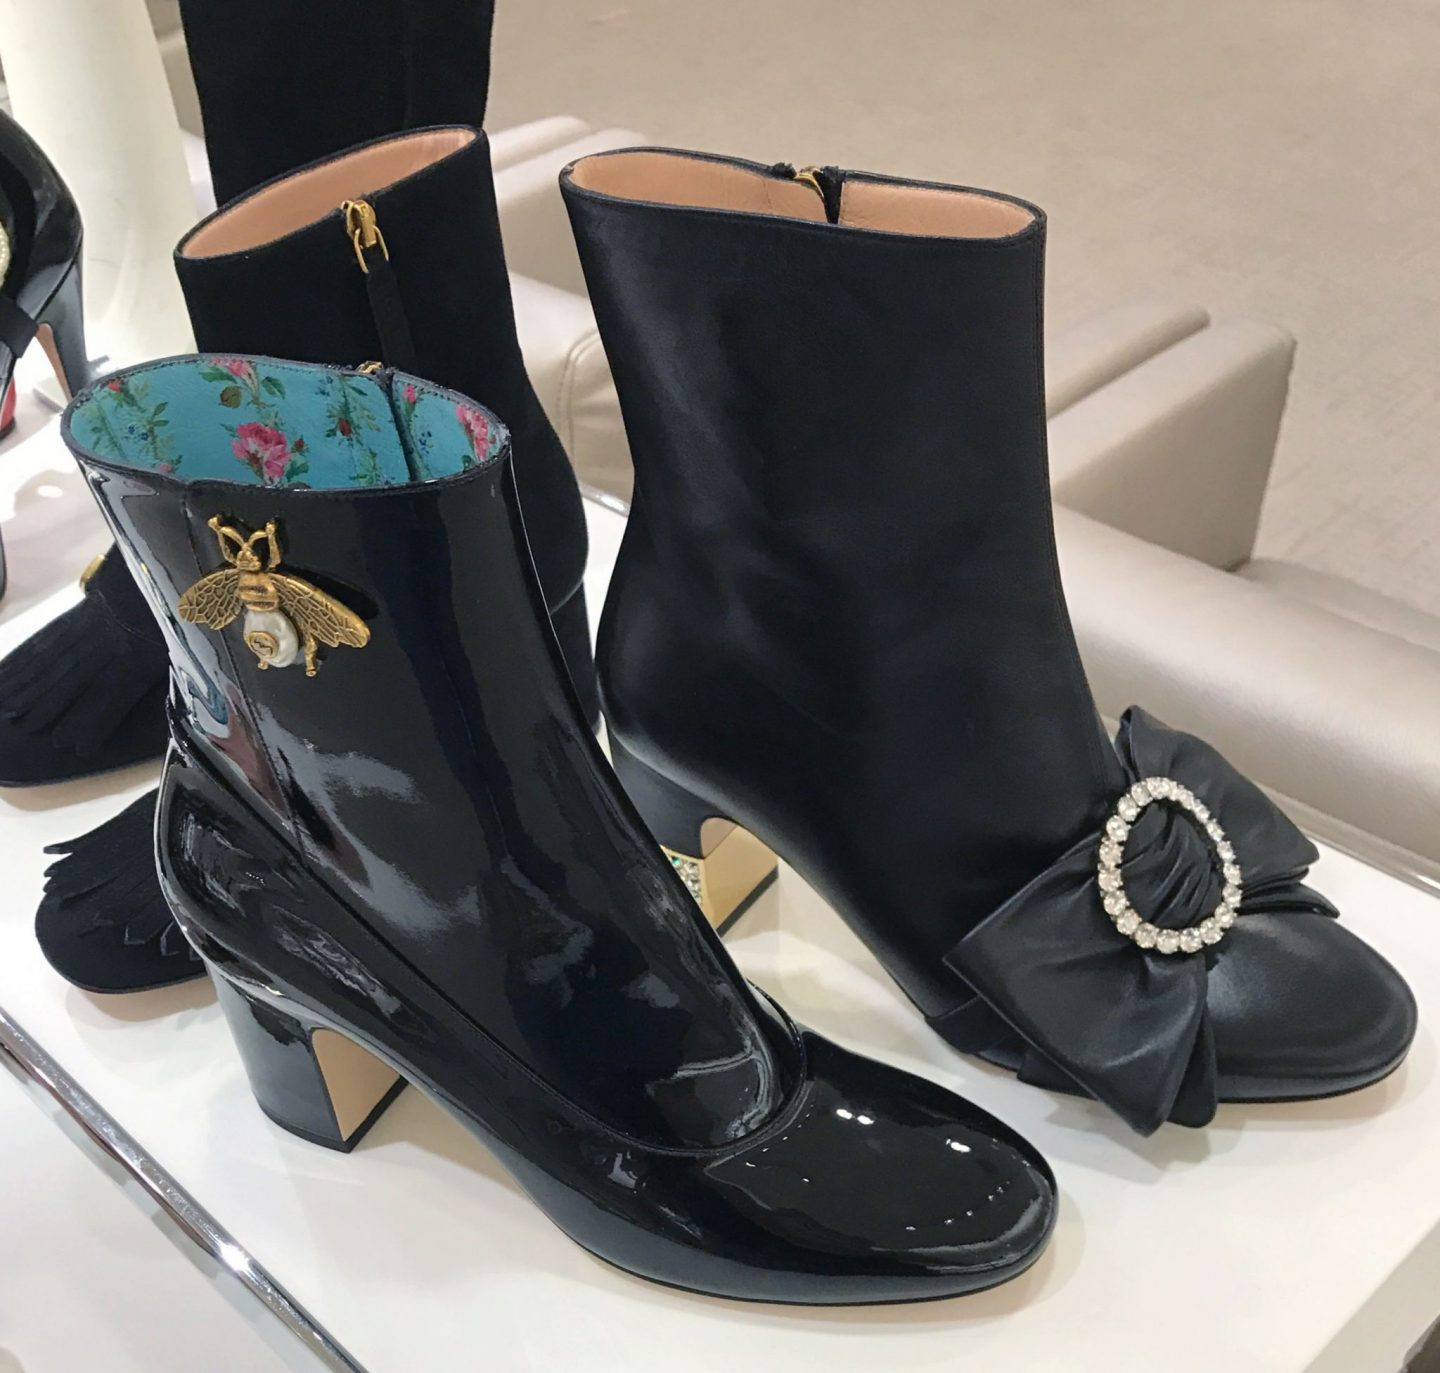 Gucci Sale New Collection Boots